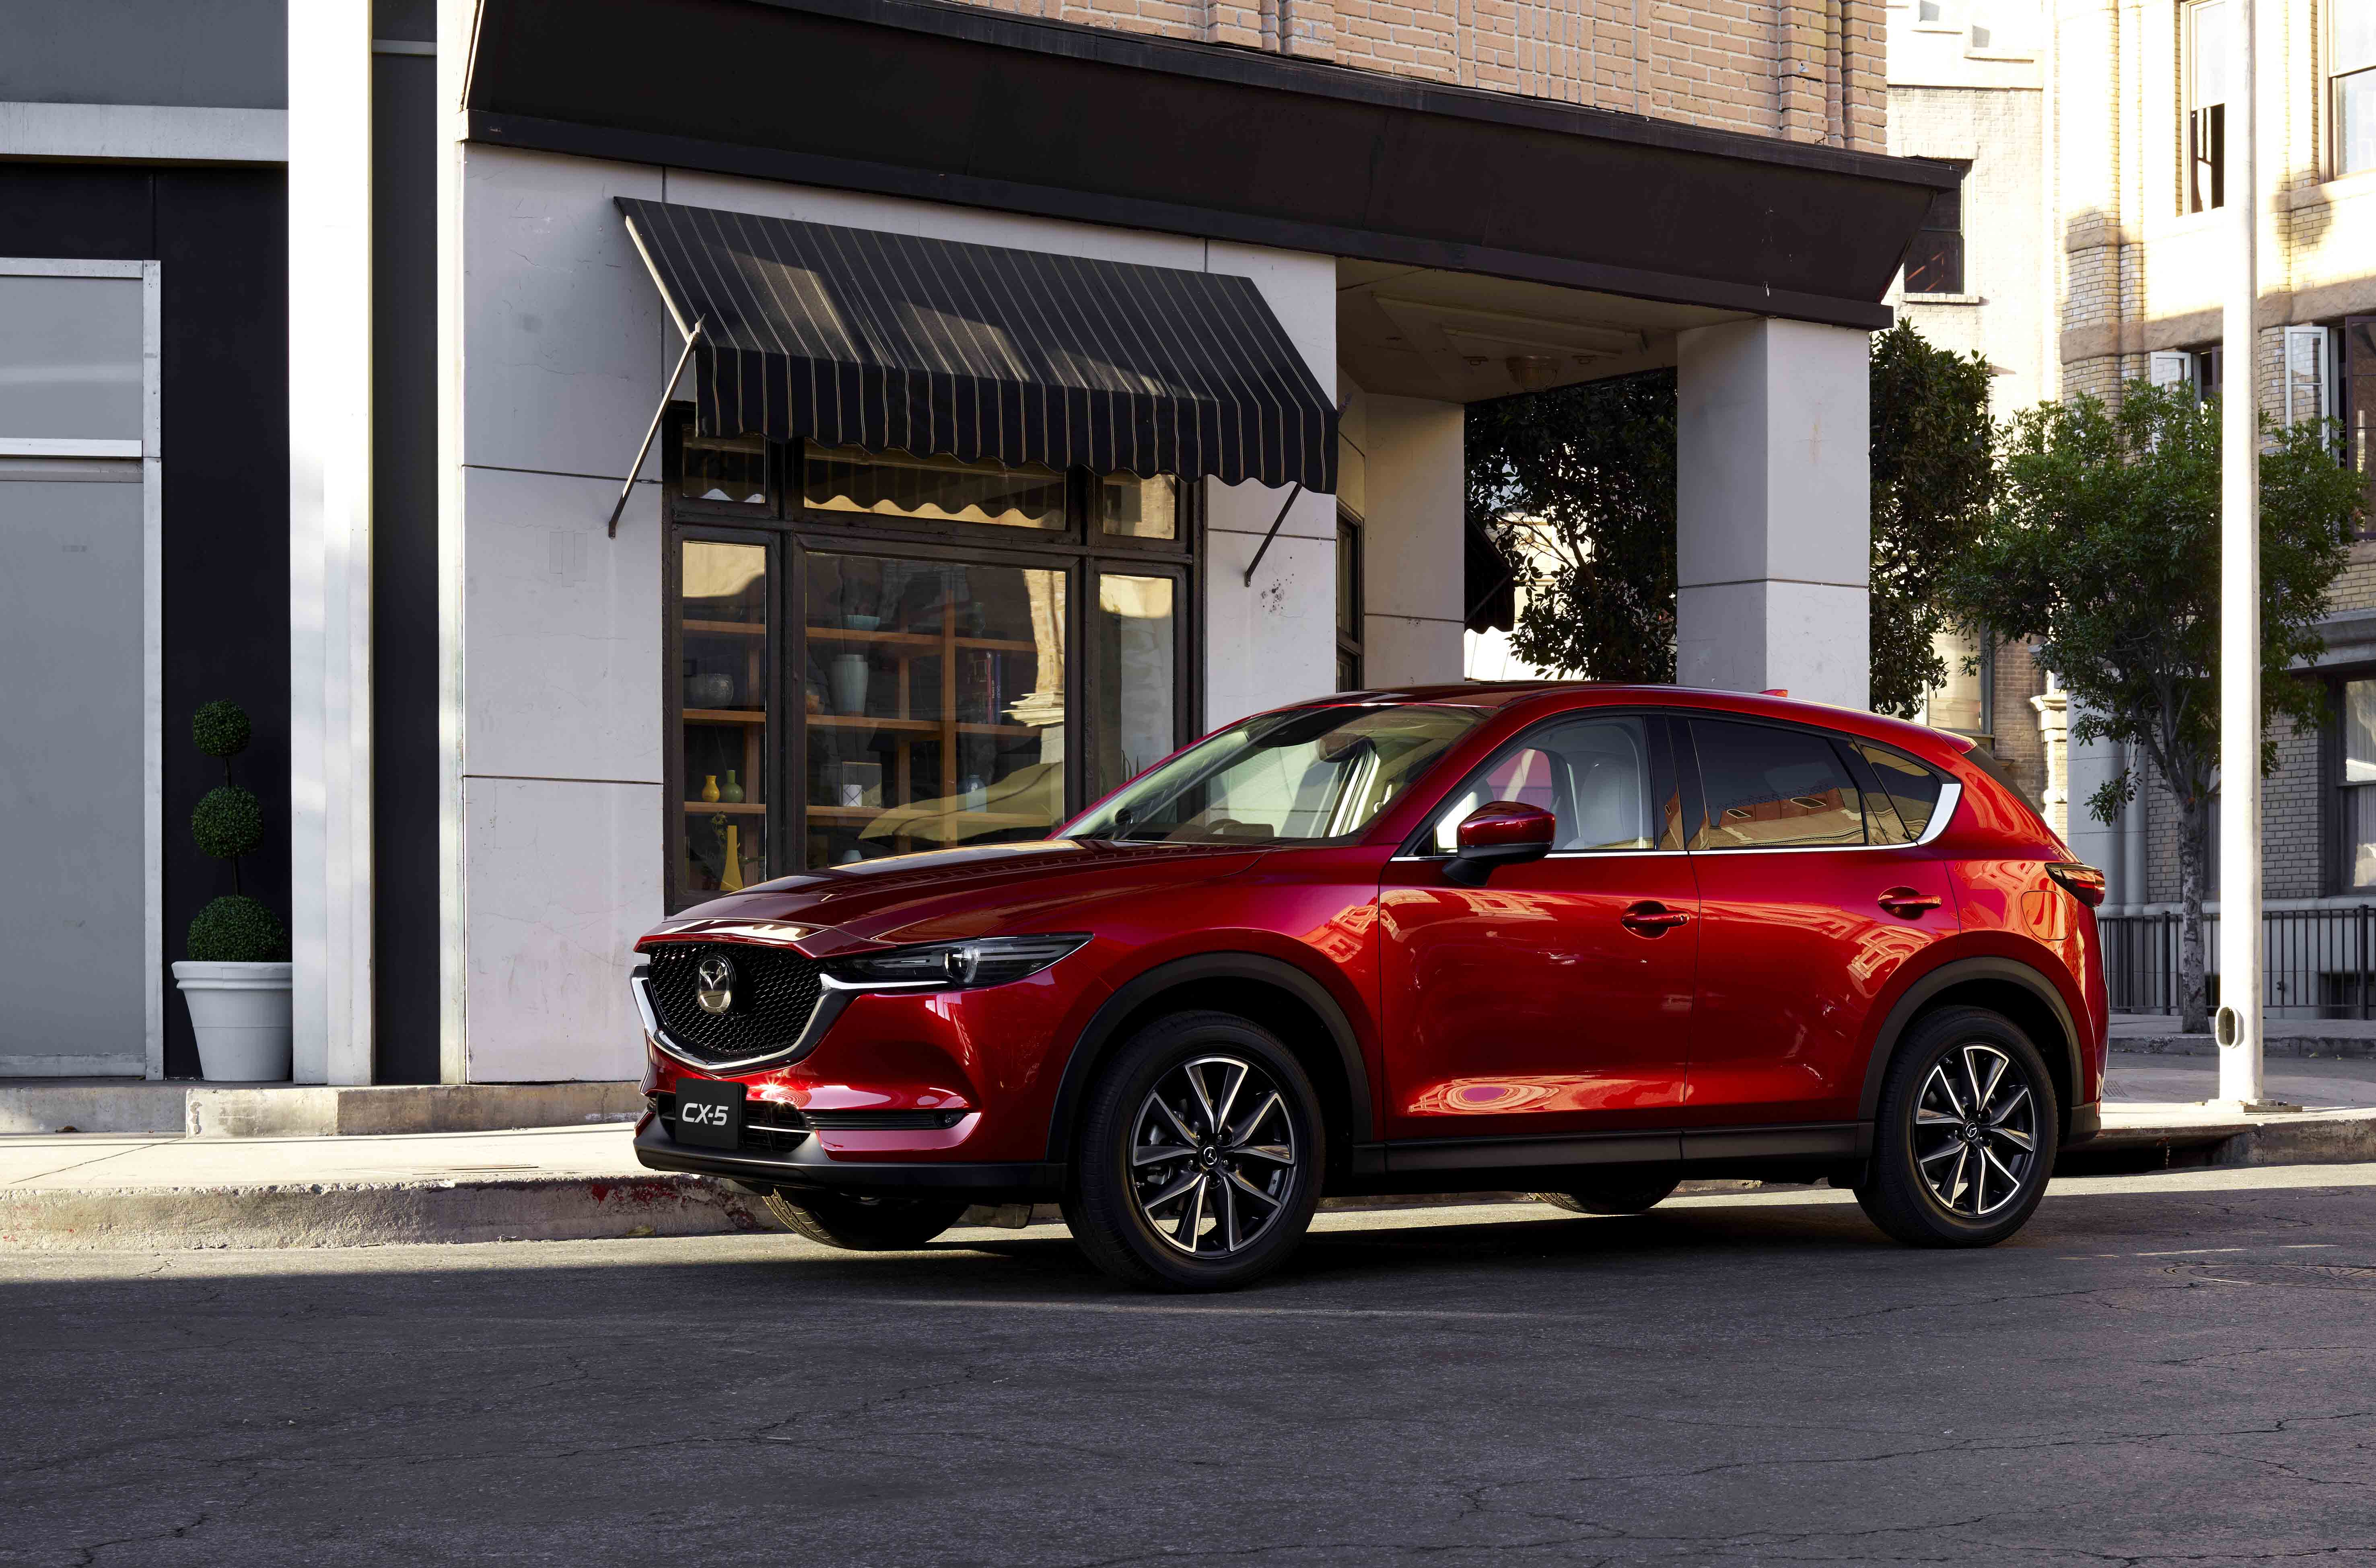 find a used mazda model at your local elizabethtown ky mazda dealership